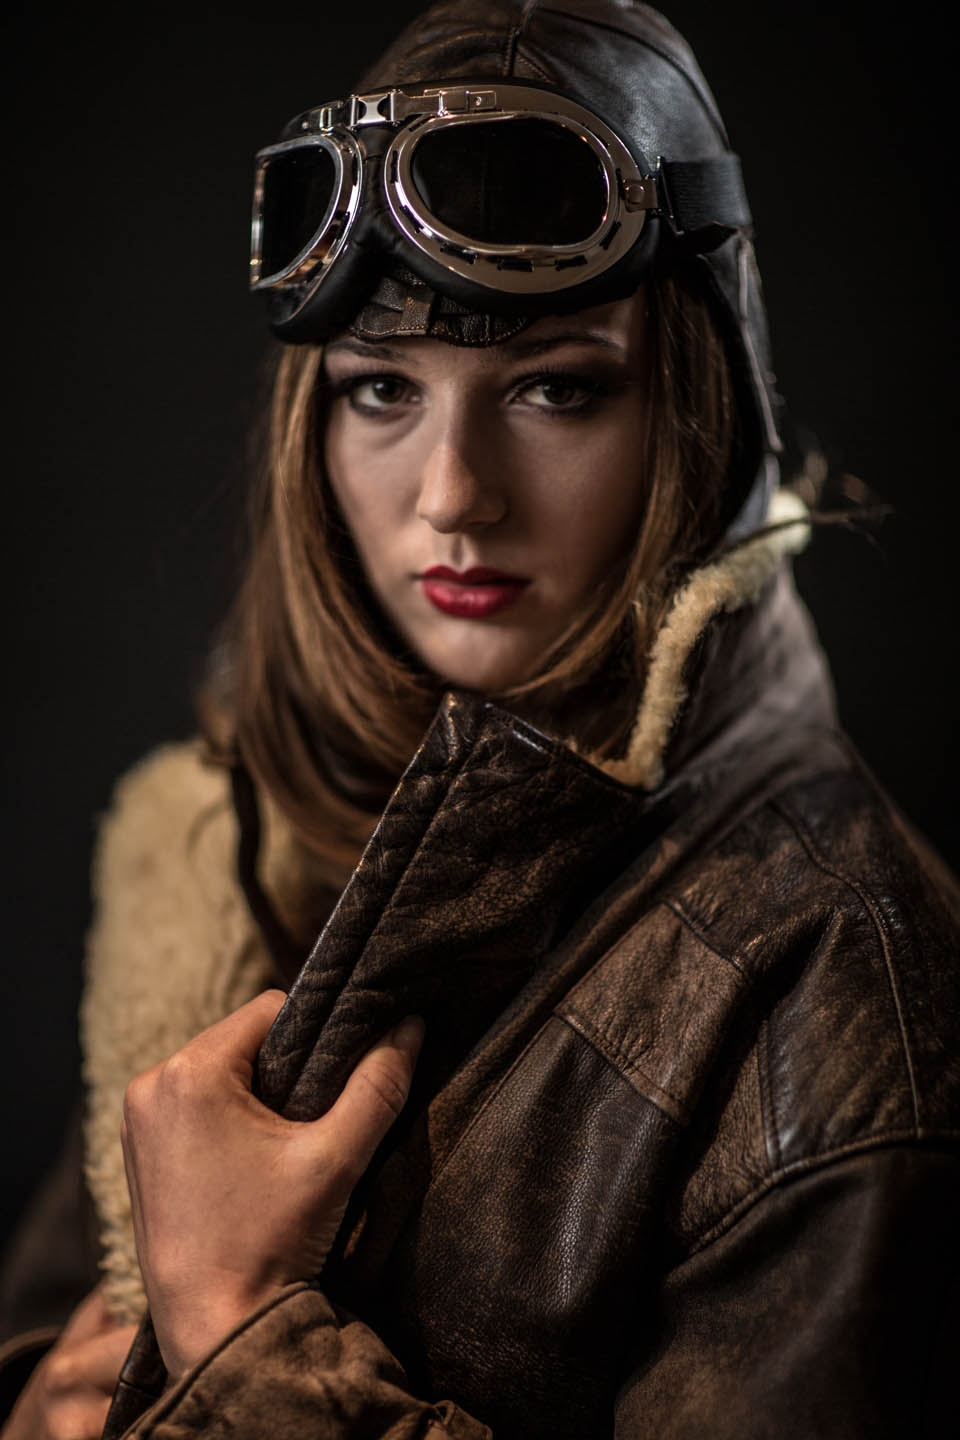 young women in a flying helmet and jacket